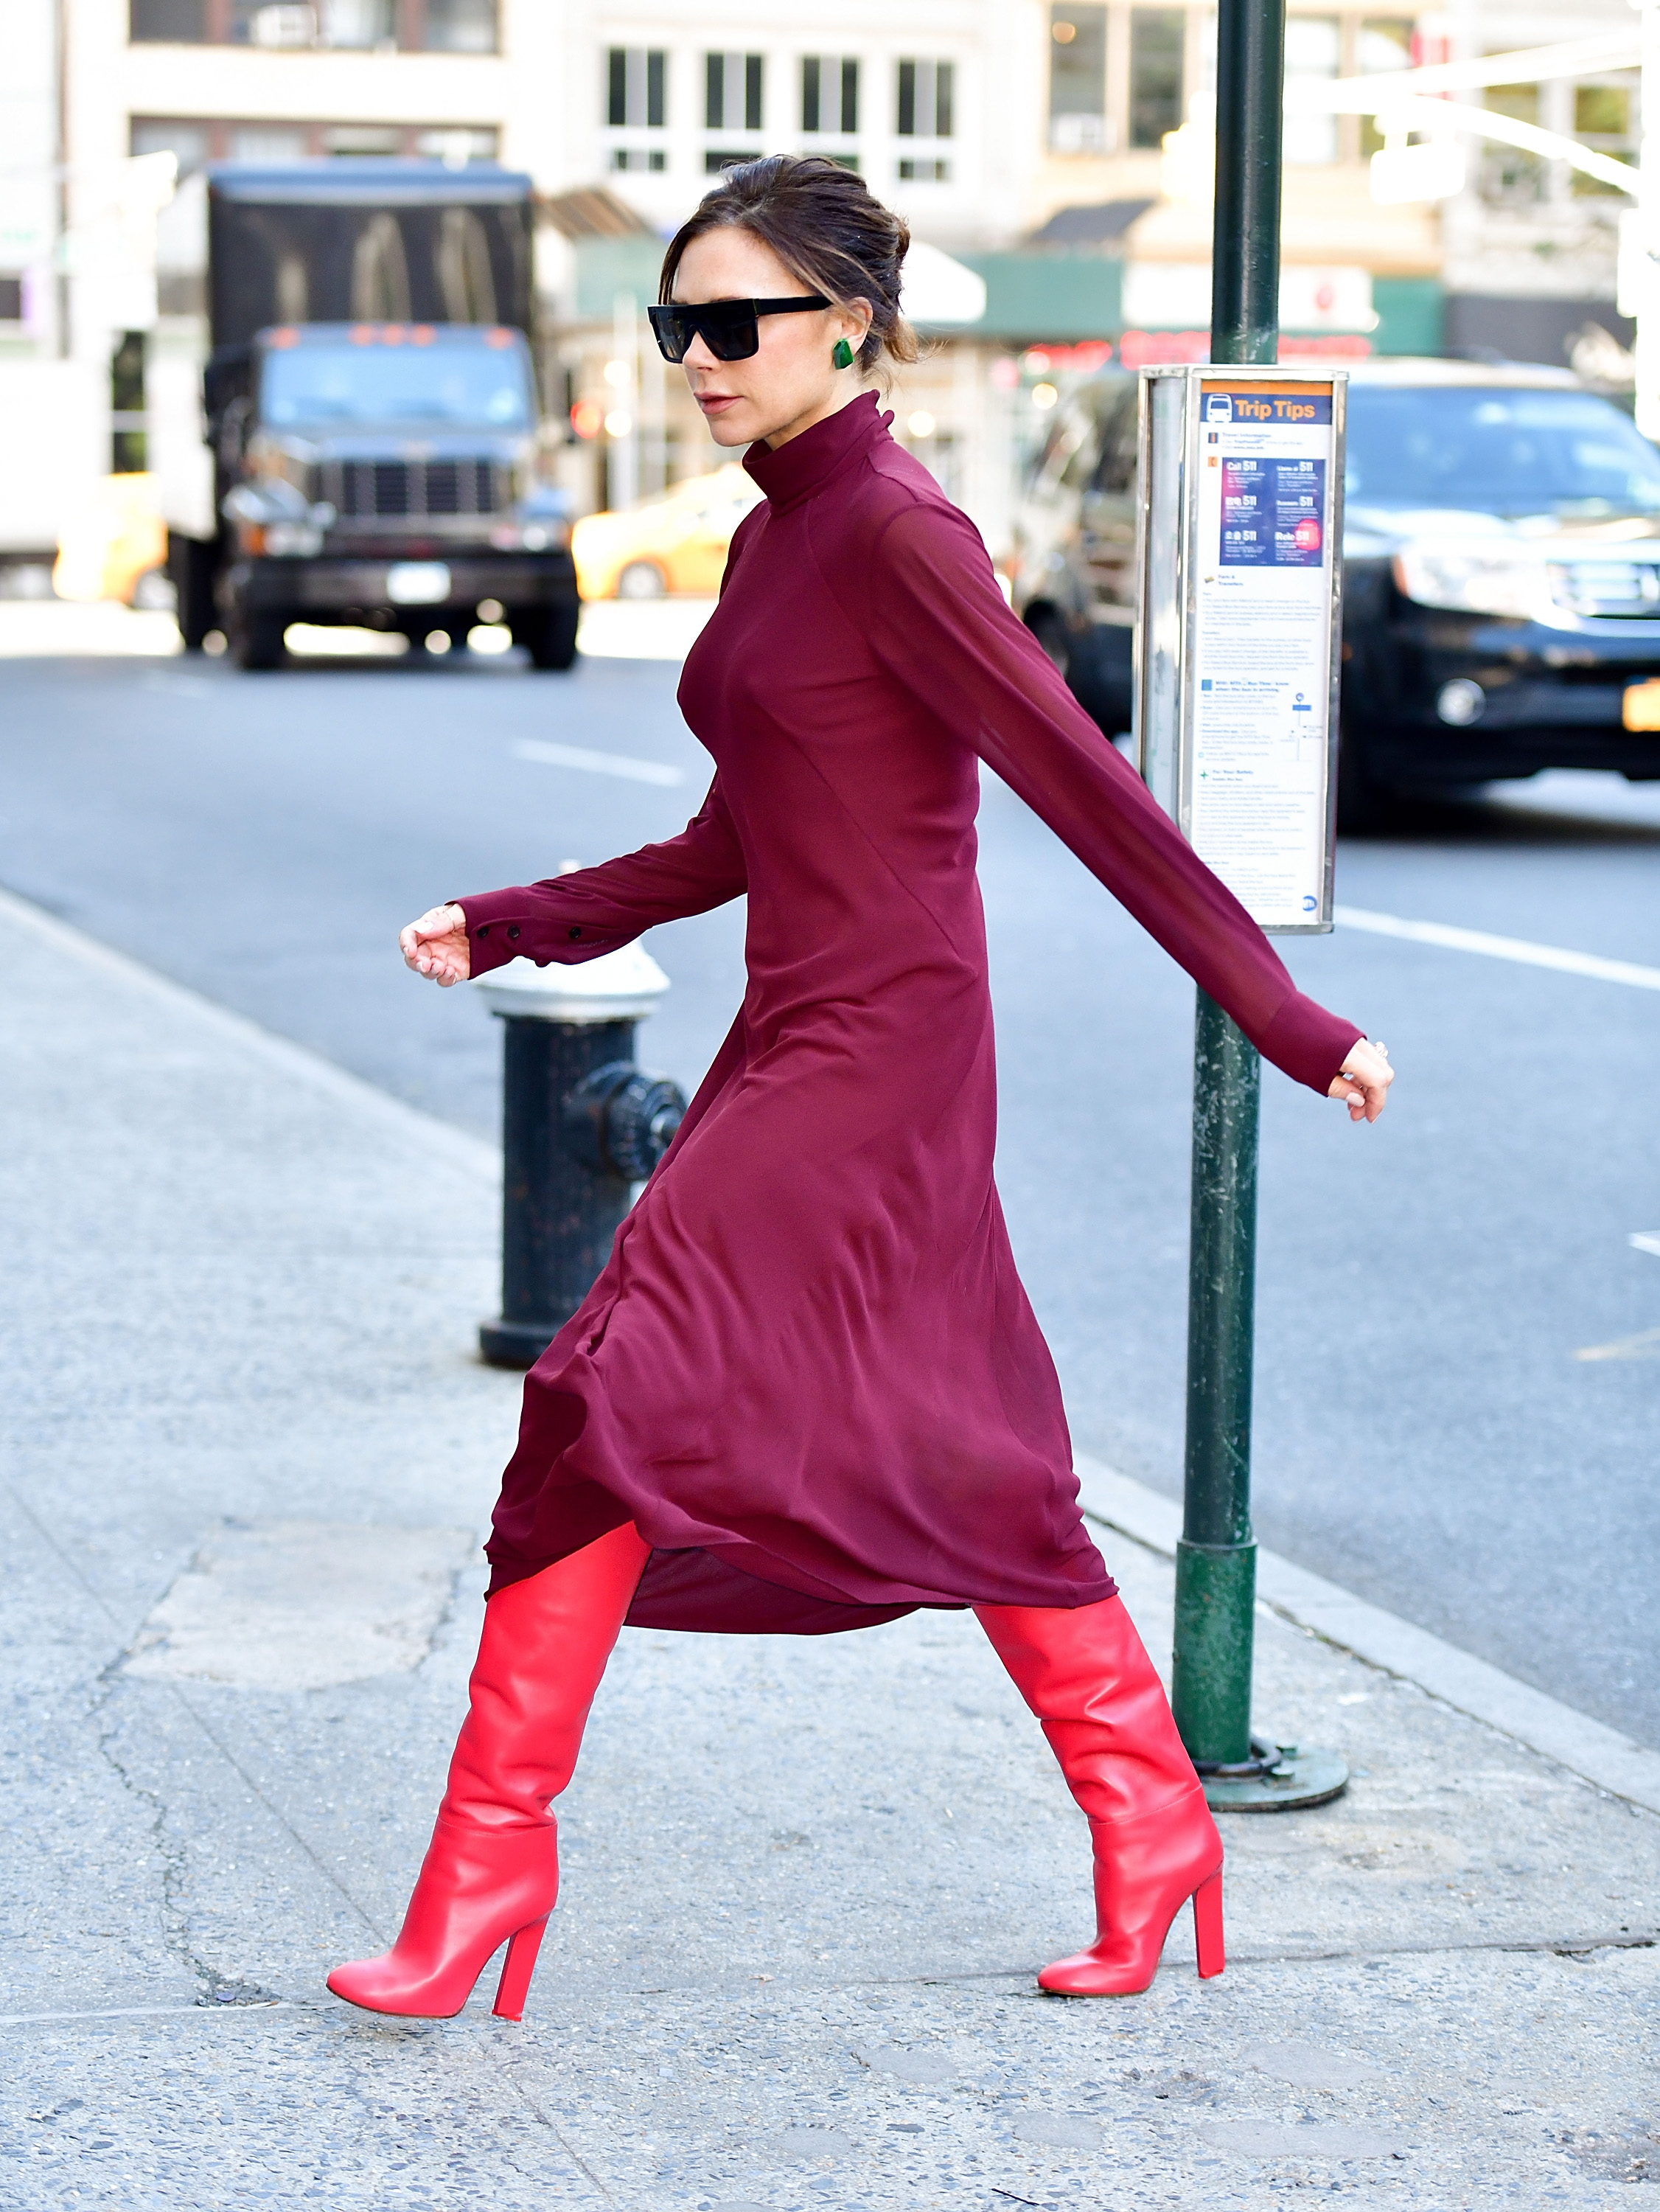 NEW YORK, NY - OCTOBER 13:  Victoria Beckham seen on the streets of Manhattan on October 13, 2017 in New York City.  (Photo by James Devaney/GC Images)